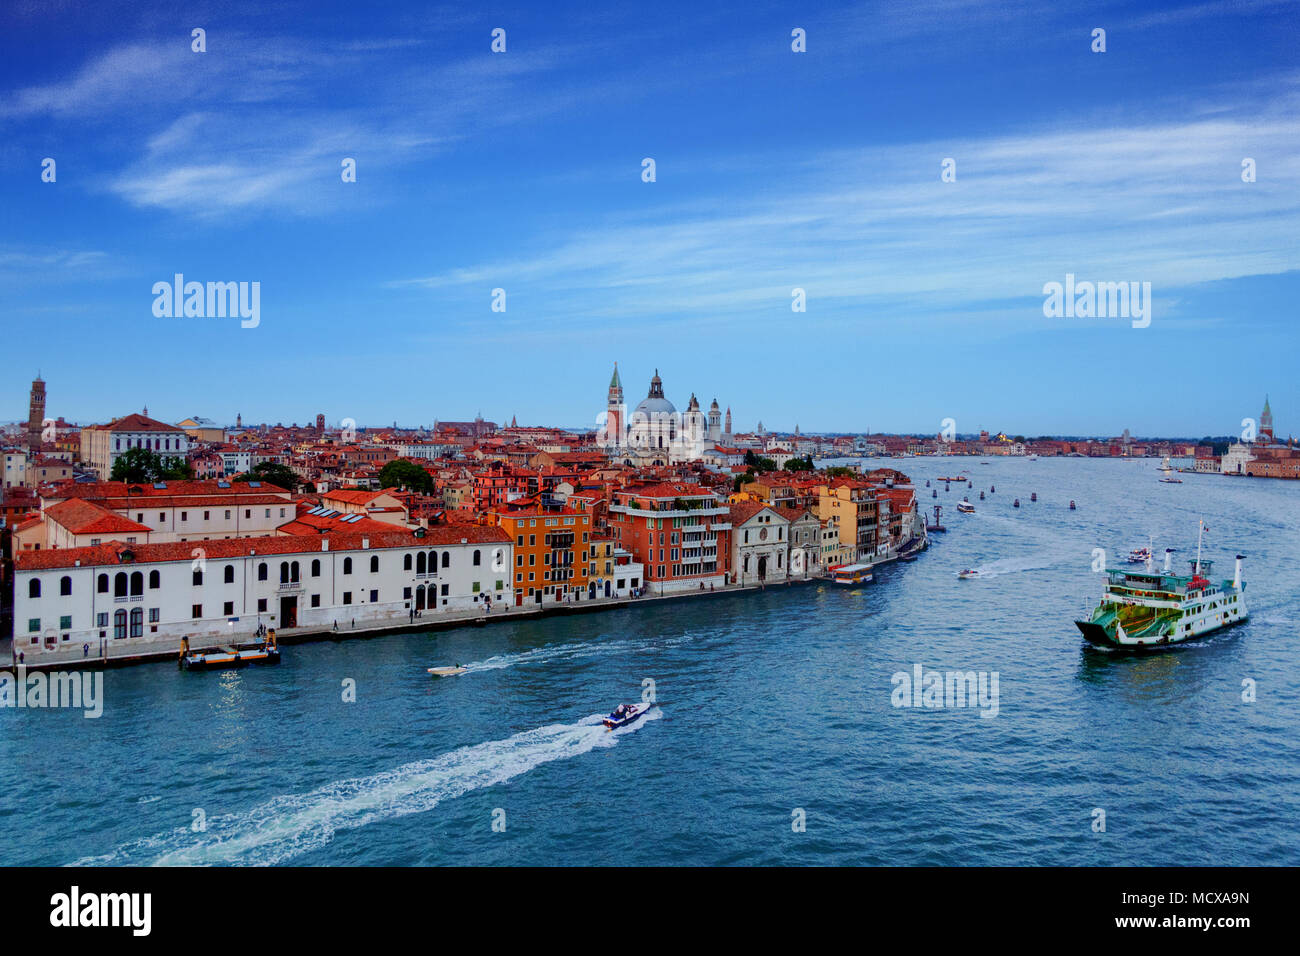 A Large Ferry and Many Small  Boats in the Canale Della Giudecca - Stock Image